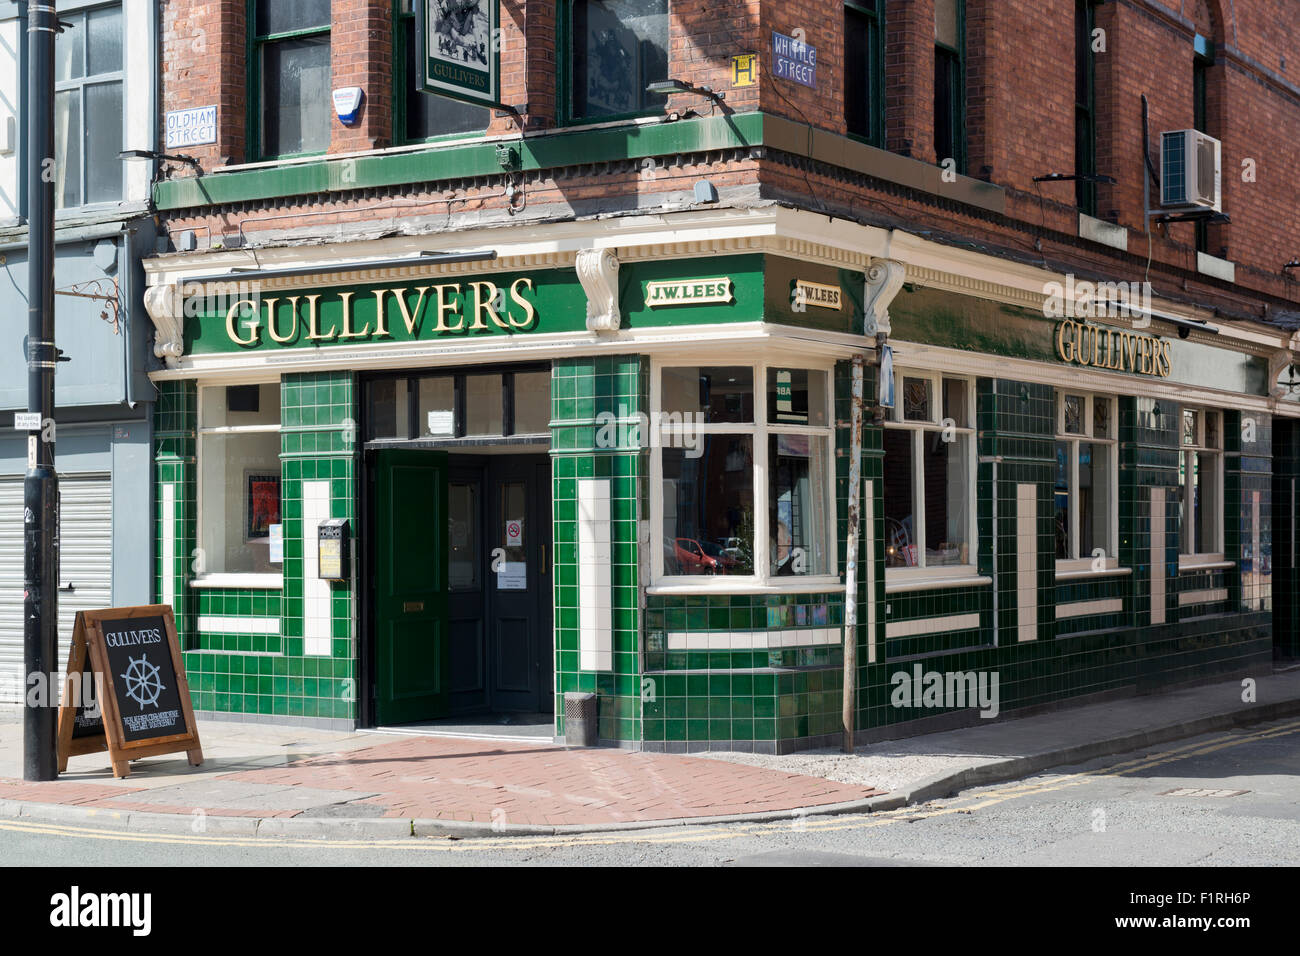 Gullivers pub located between Oldham Street and Tib Street in the Northern Quarter of Manchester. - Stock Image